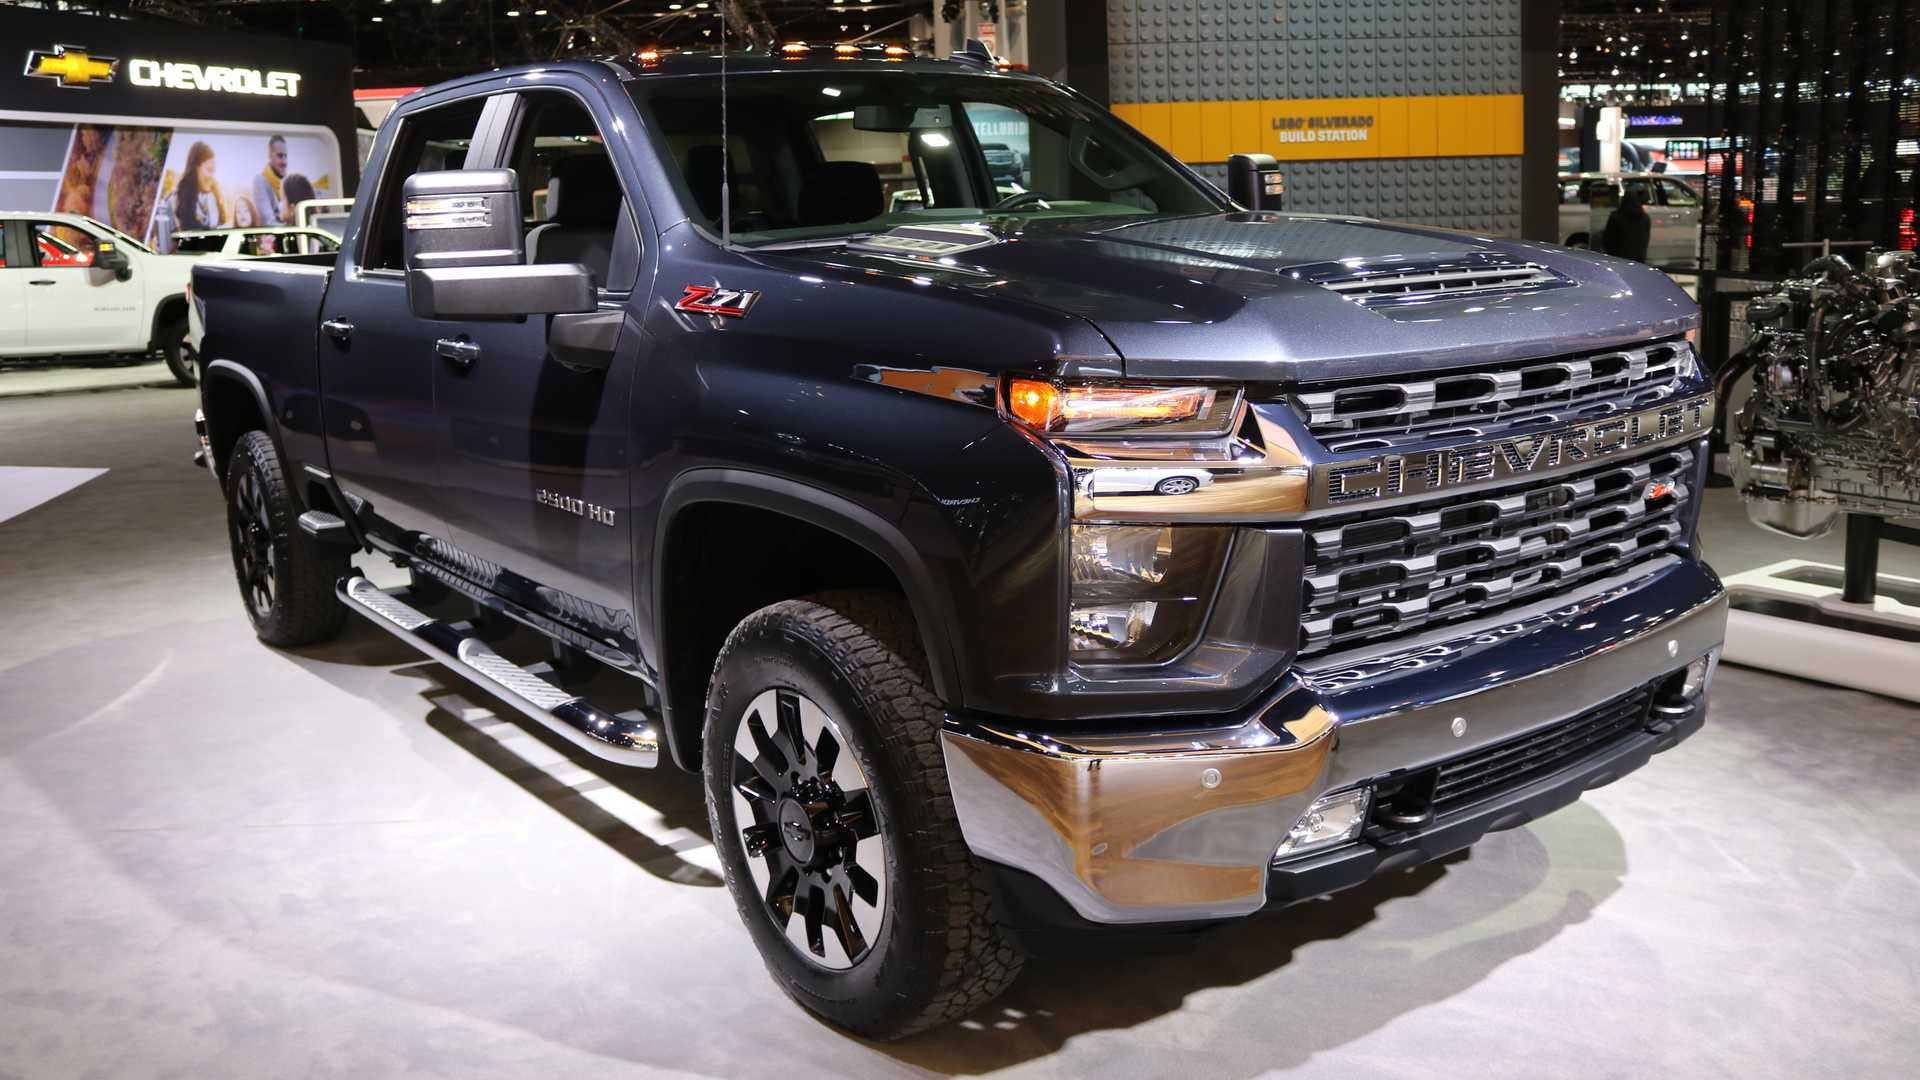 46 The 2020 Chevy Silverado Spy Shoot